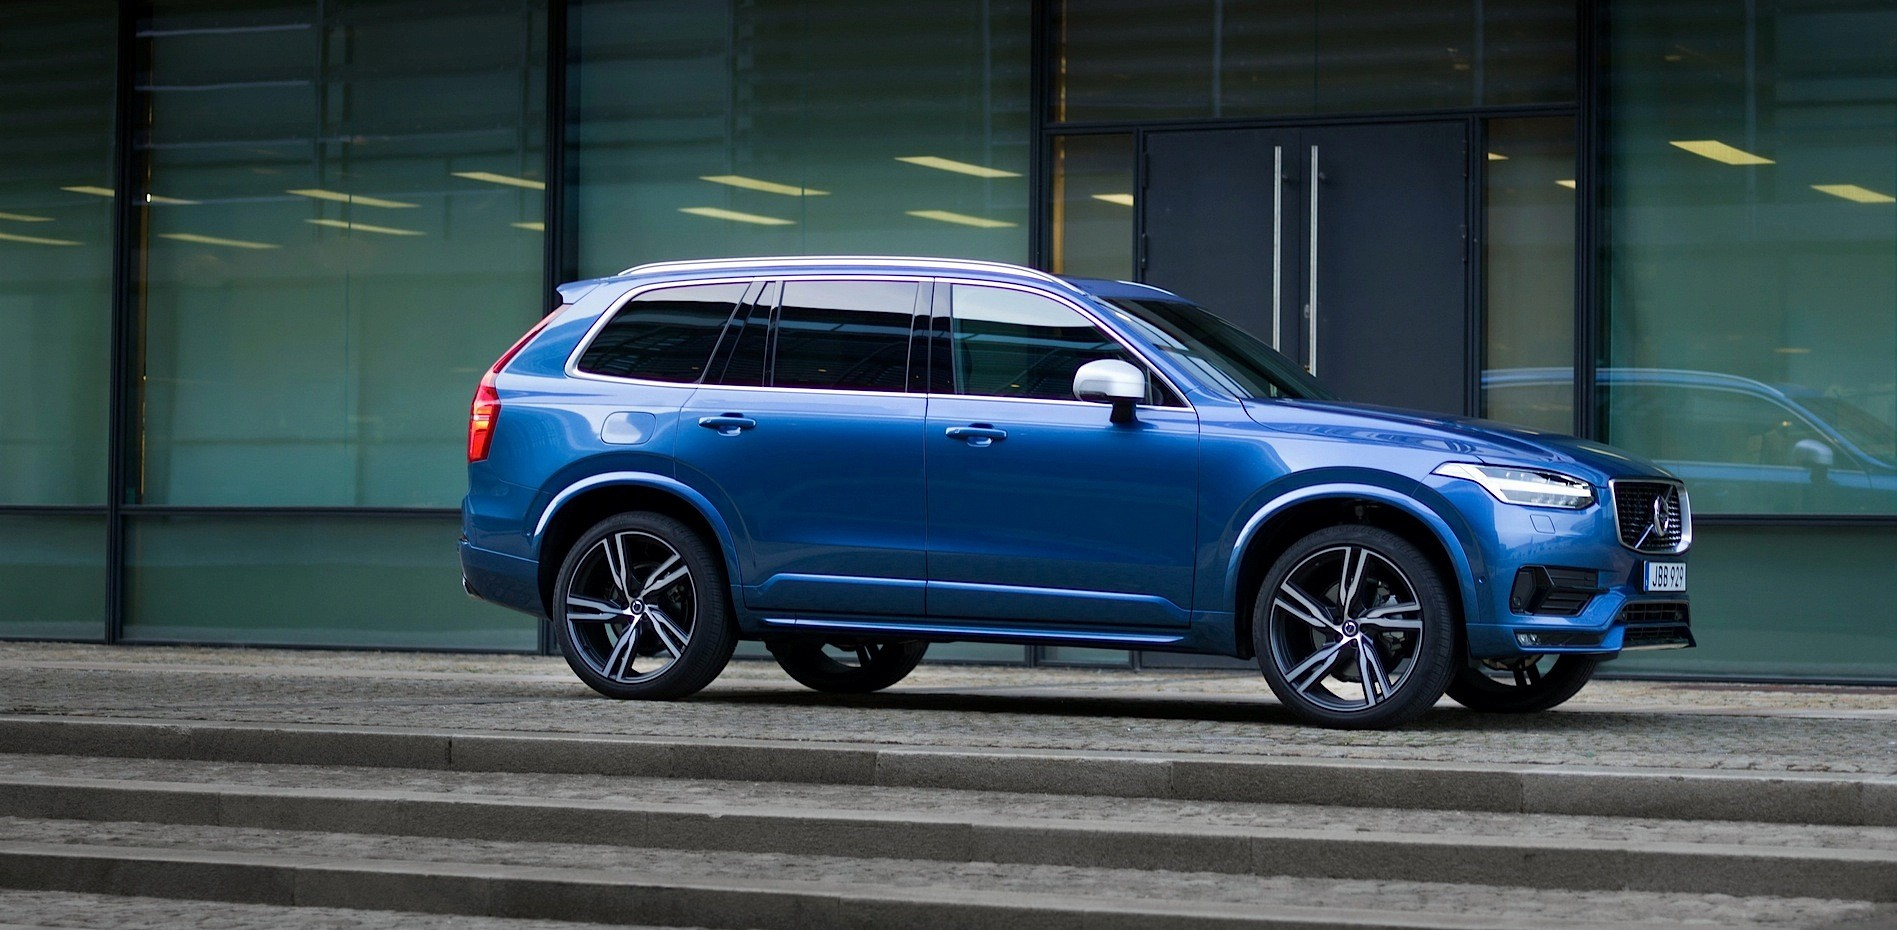 2016 Volvo Xc90 R Design Shows More Aggressive Design And